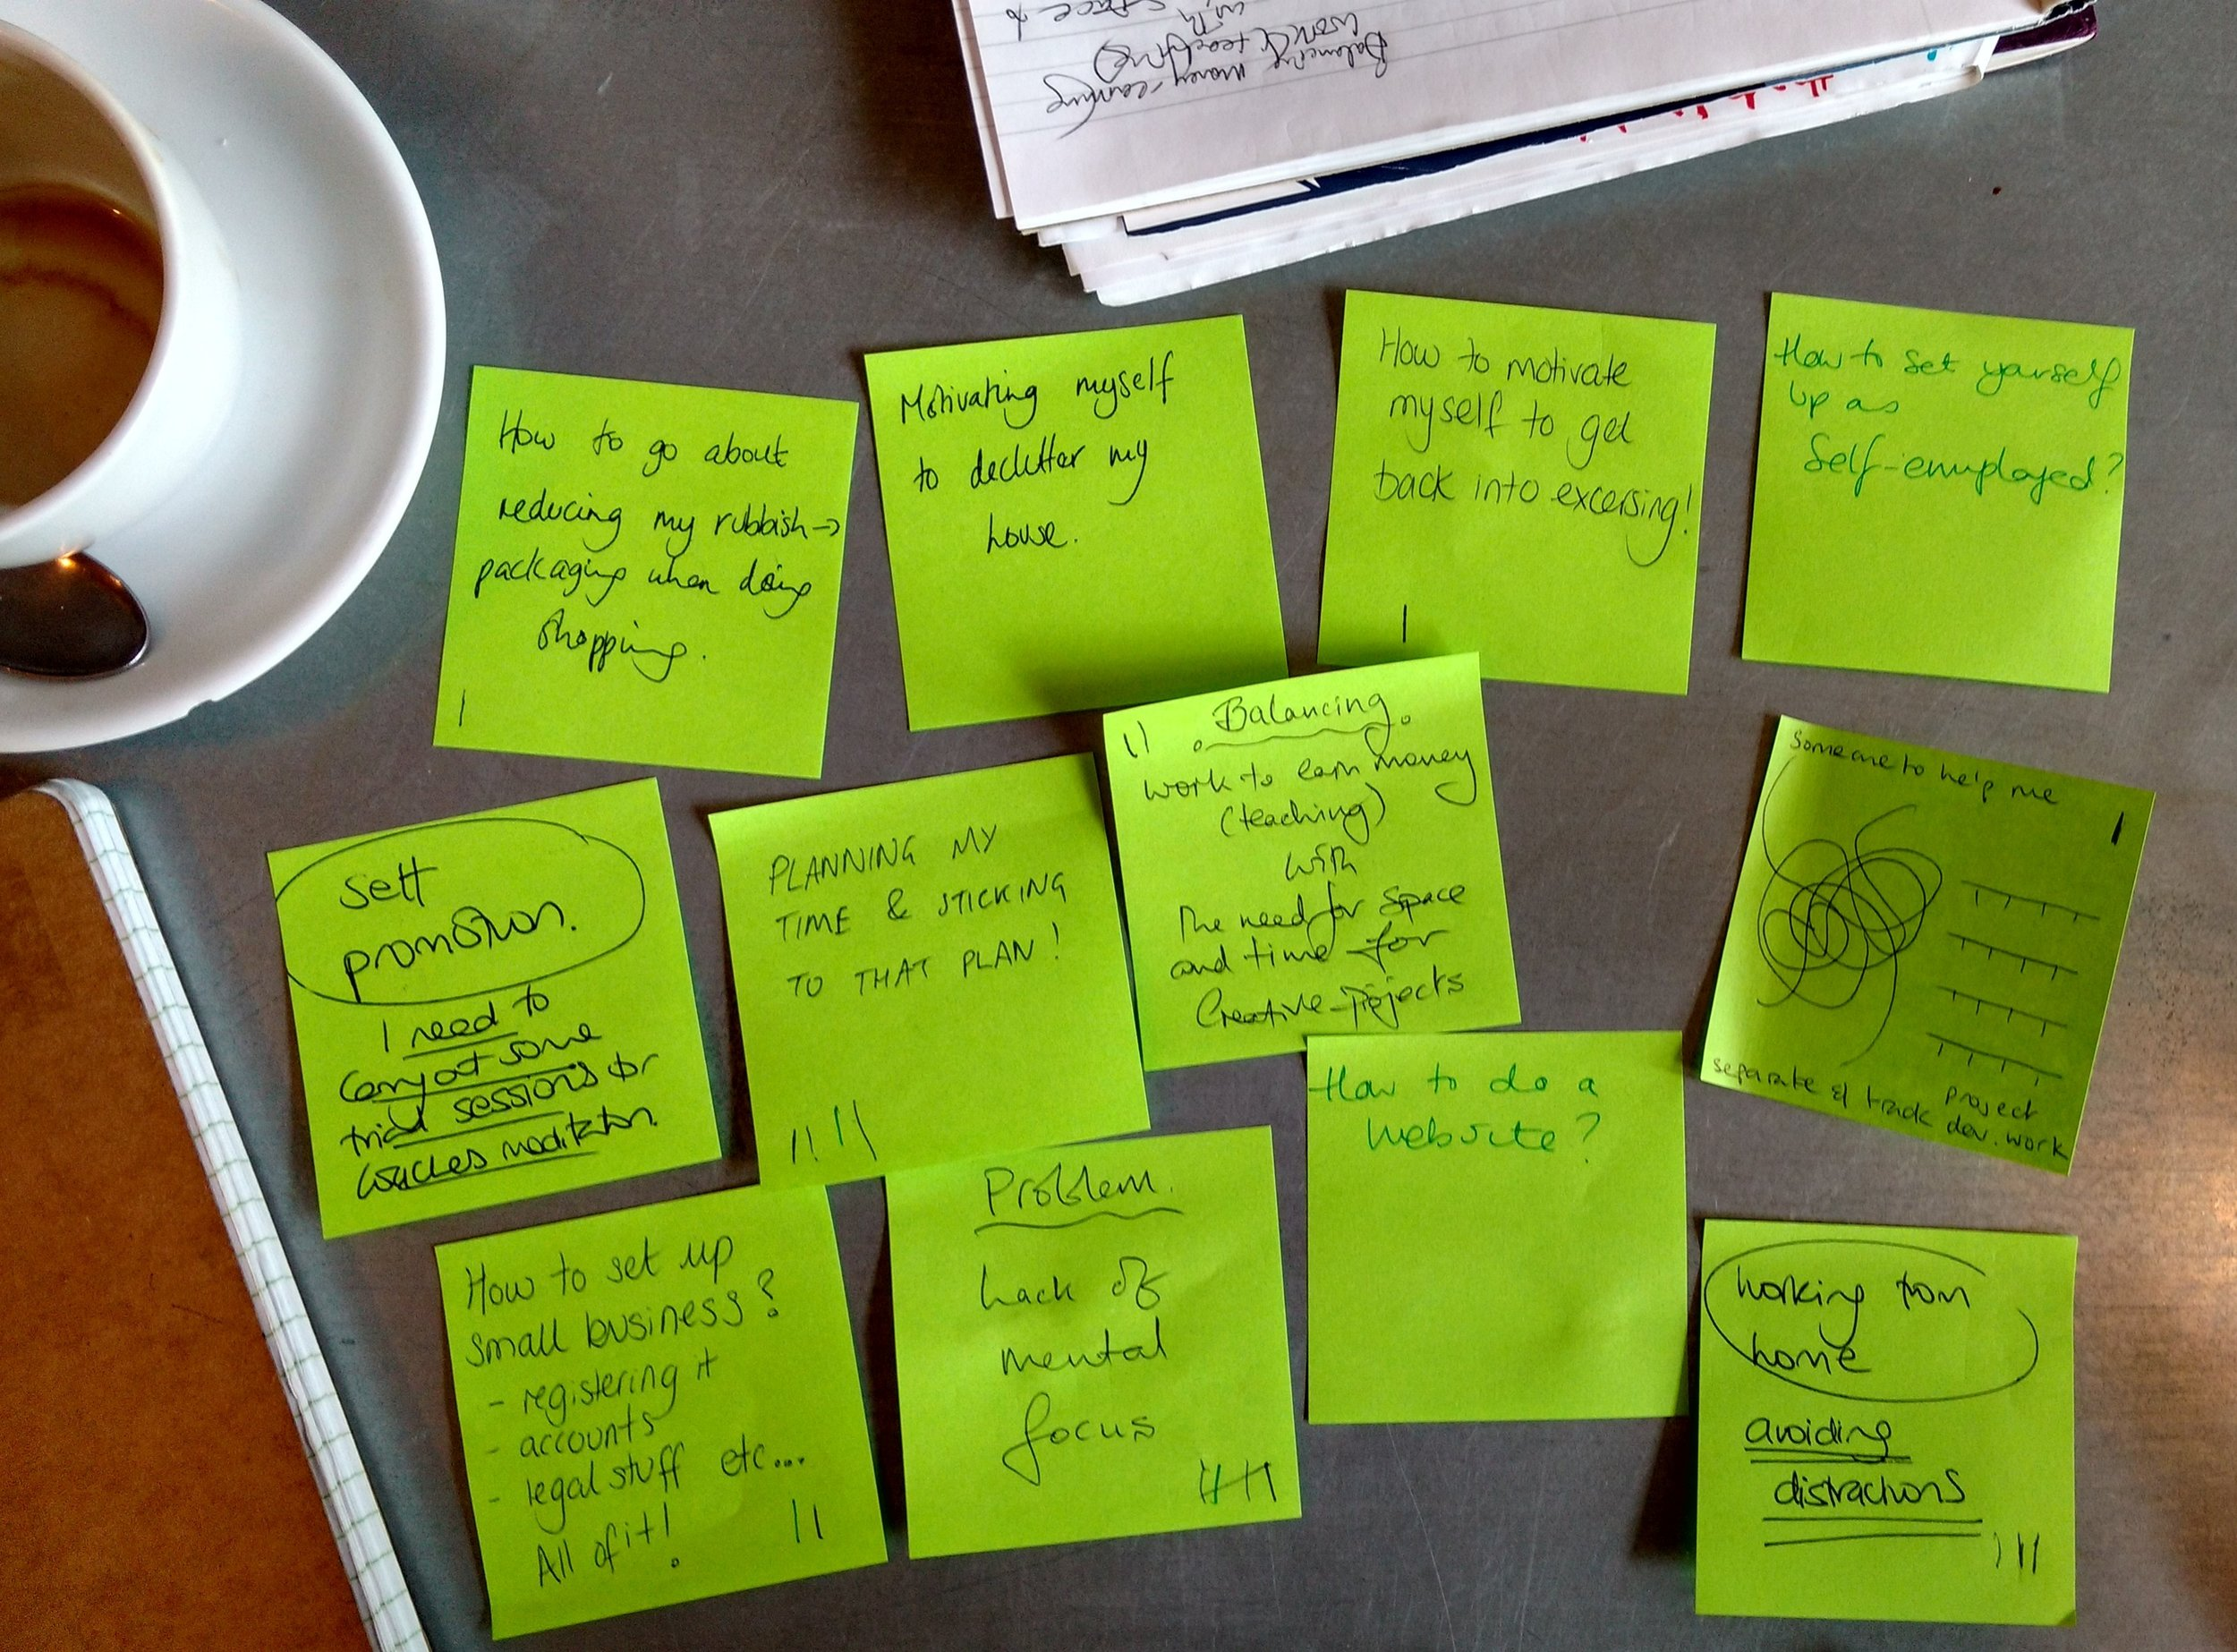 Some of the practical helps requests at one of our coffees.